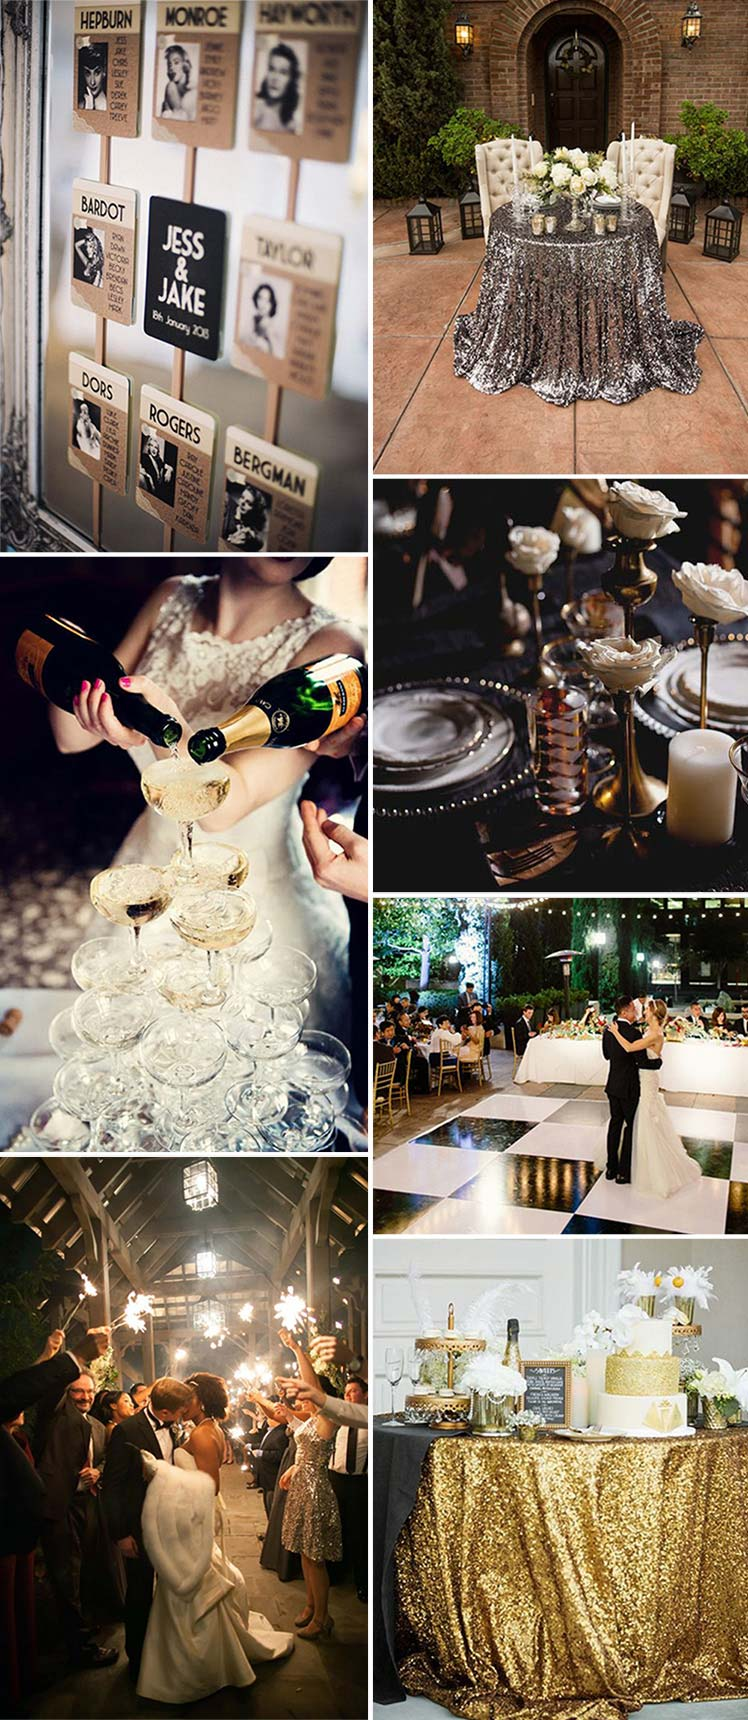 Inspiration for your Hollywood wedding theme